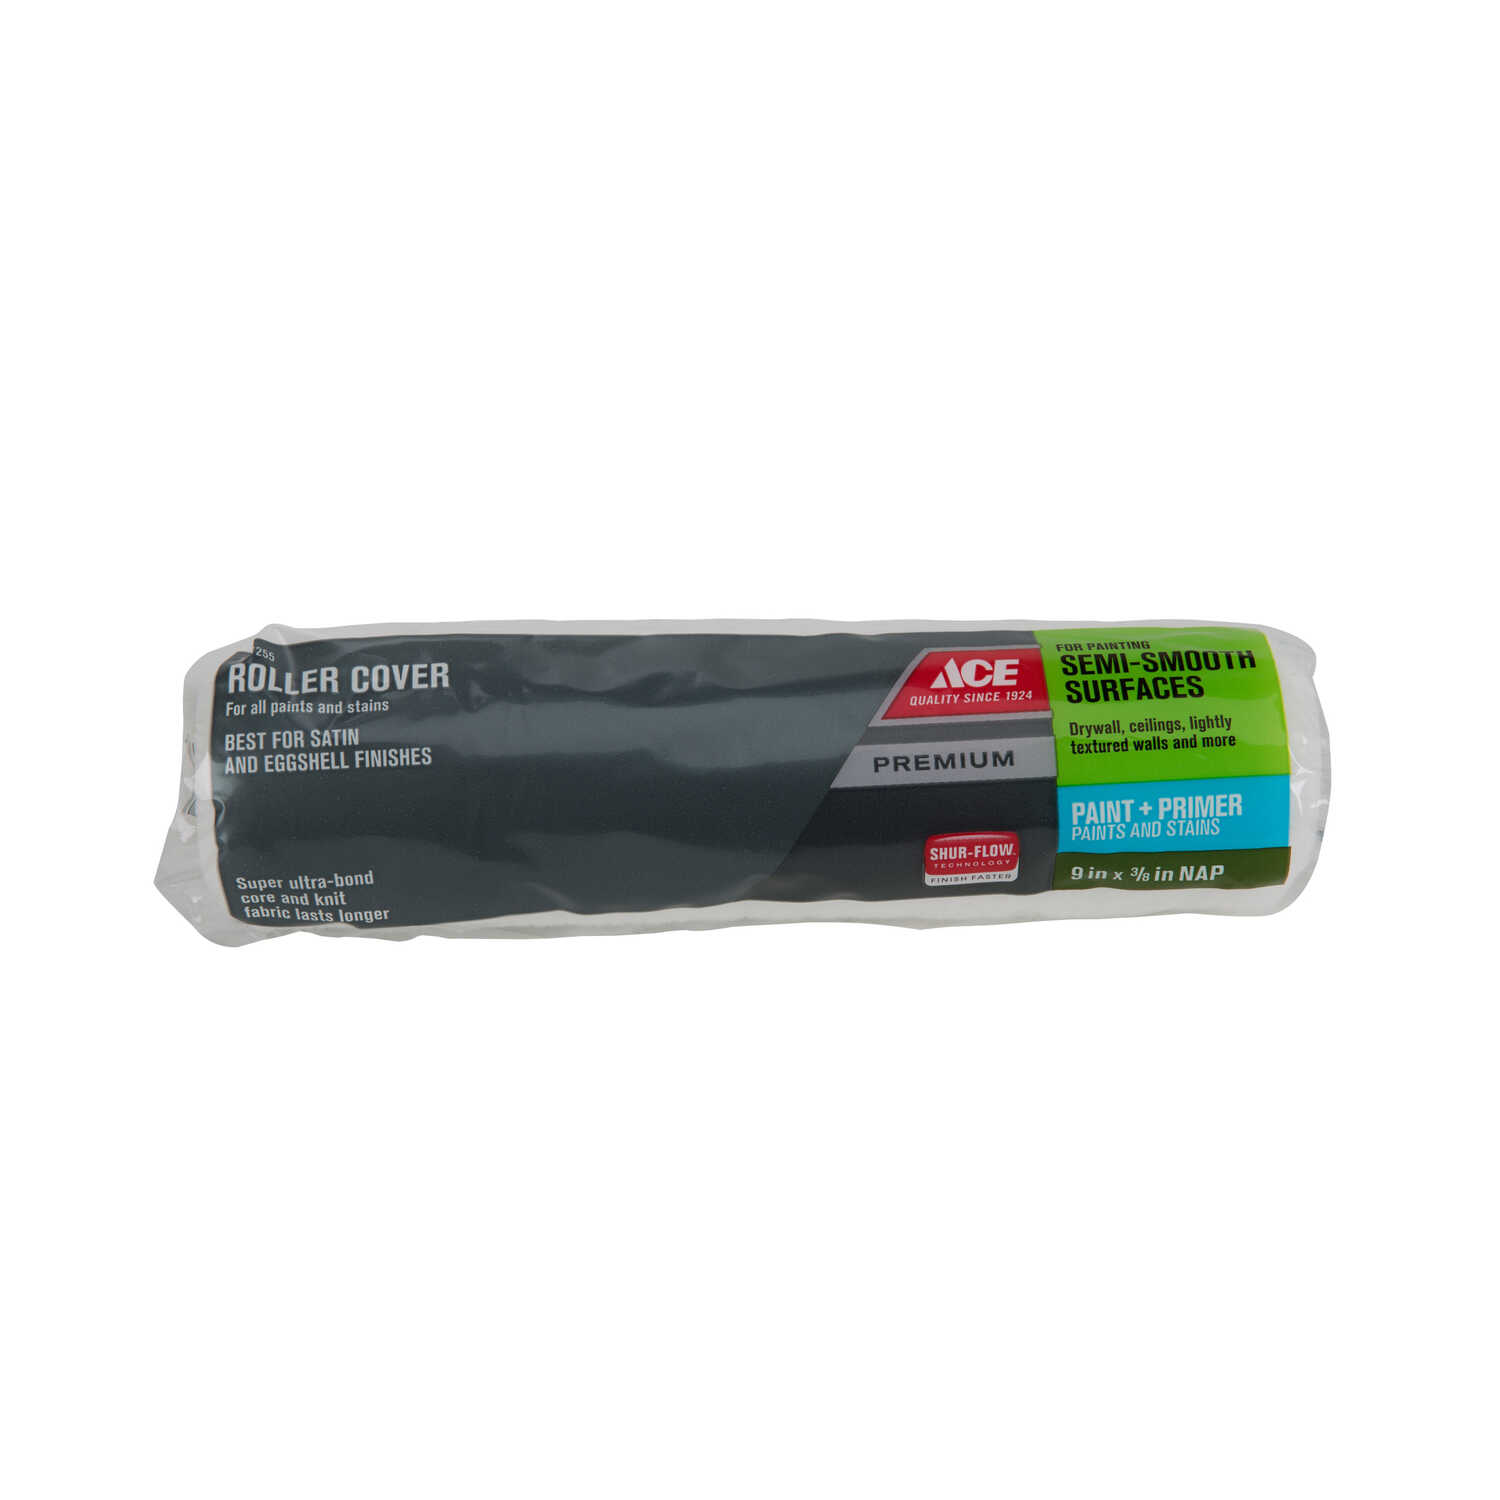 Ace  Premium  Knit  3/8 in.  x 9 in. W Regular  Paint Roller Cover  For Semi-Smooth Surfaces 1 pk